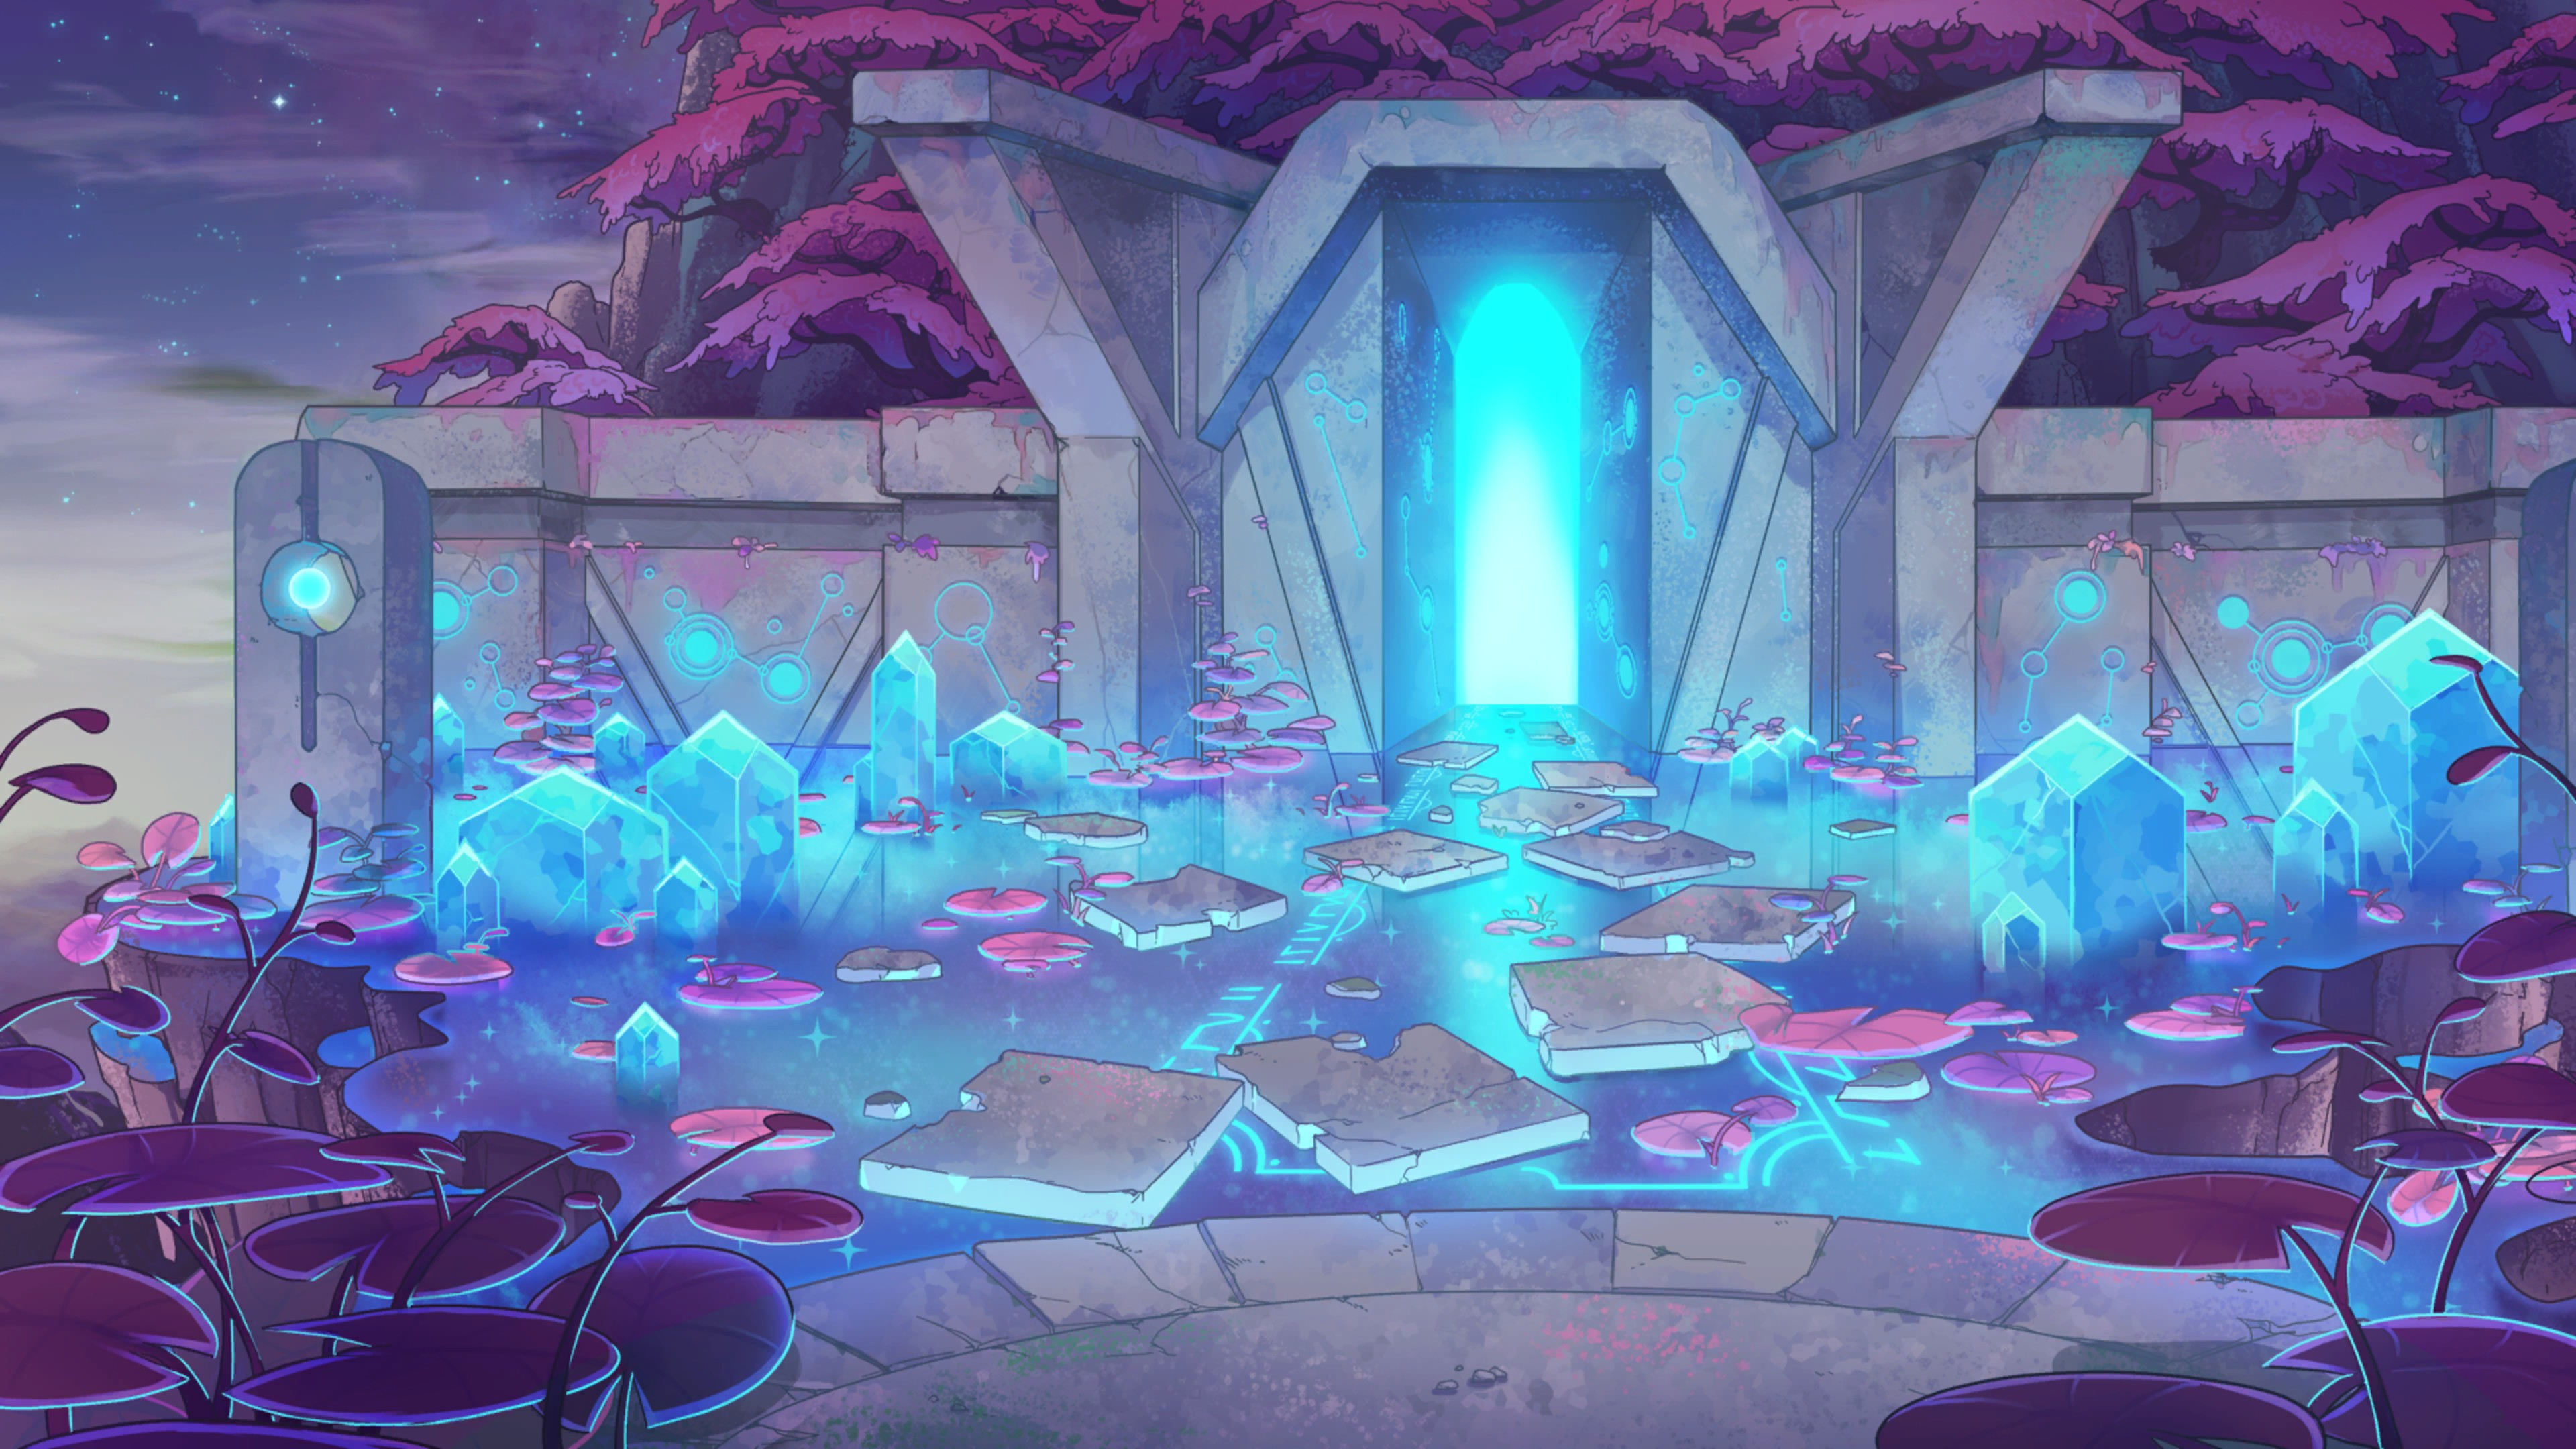 The World Next Door. Watery temple with a blue glow